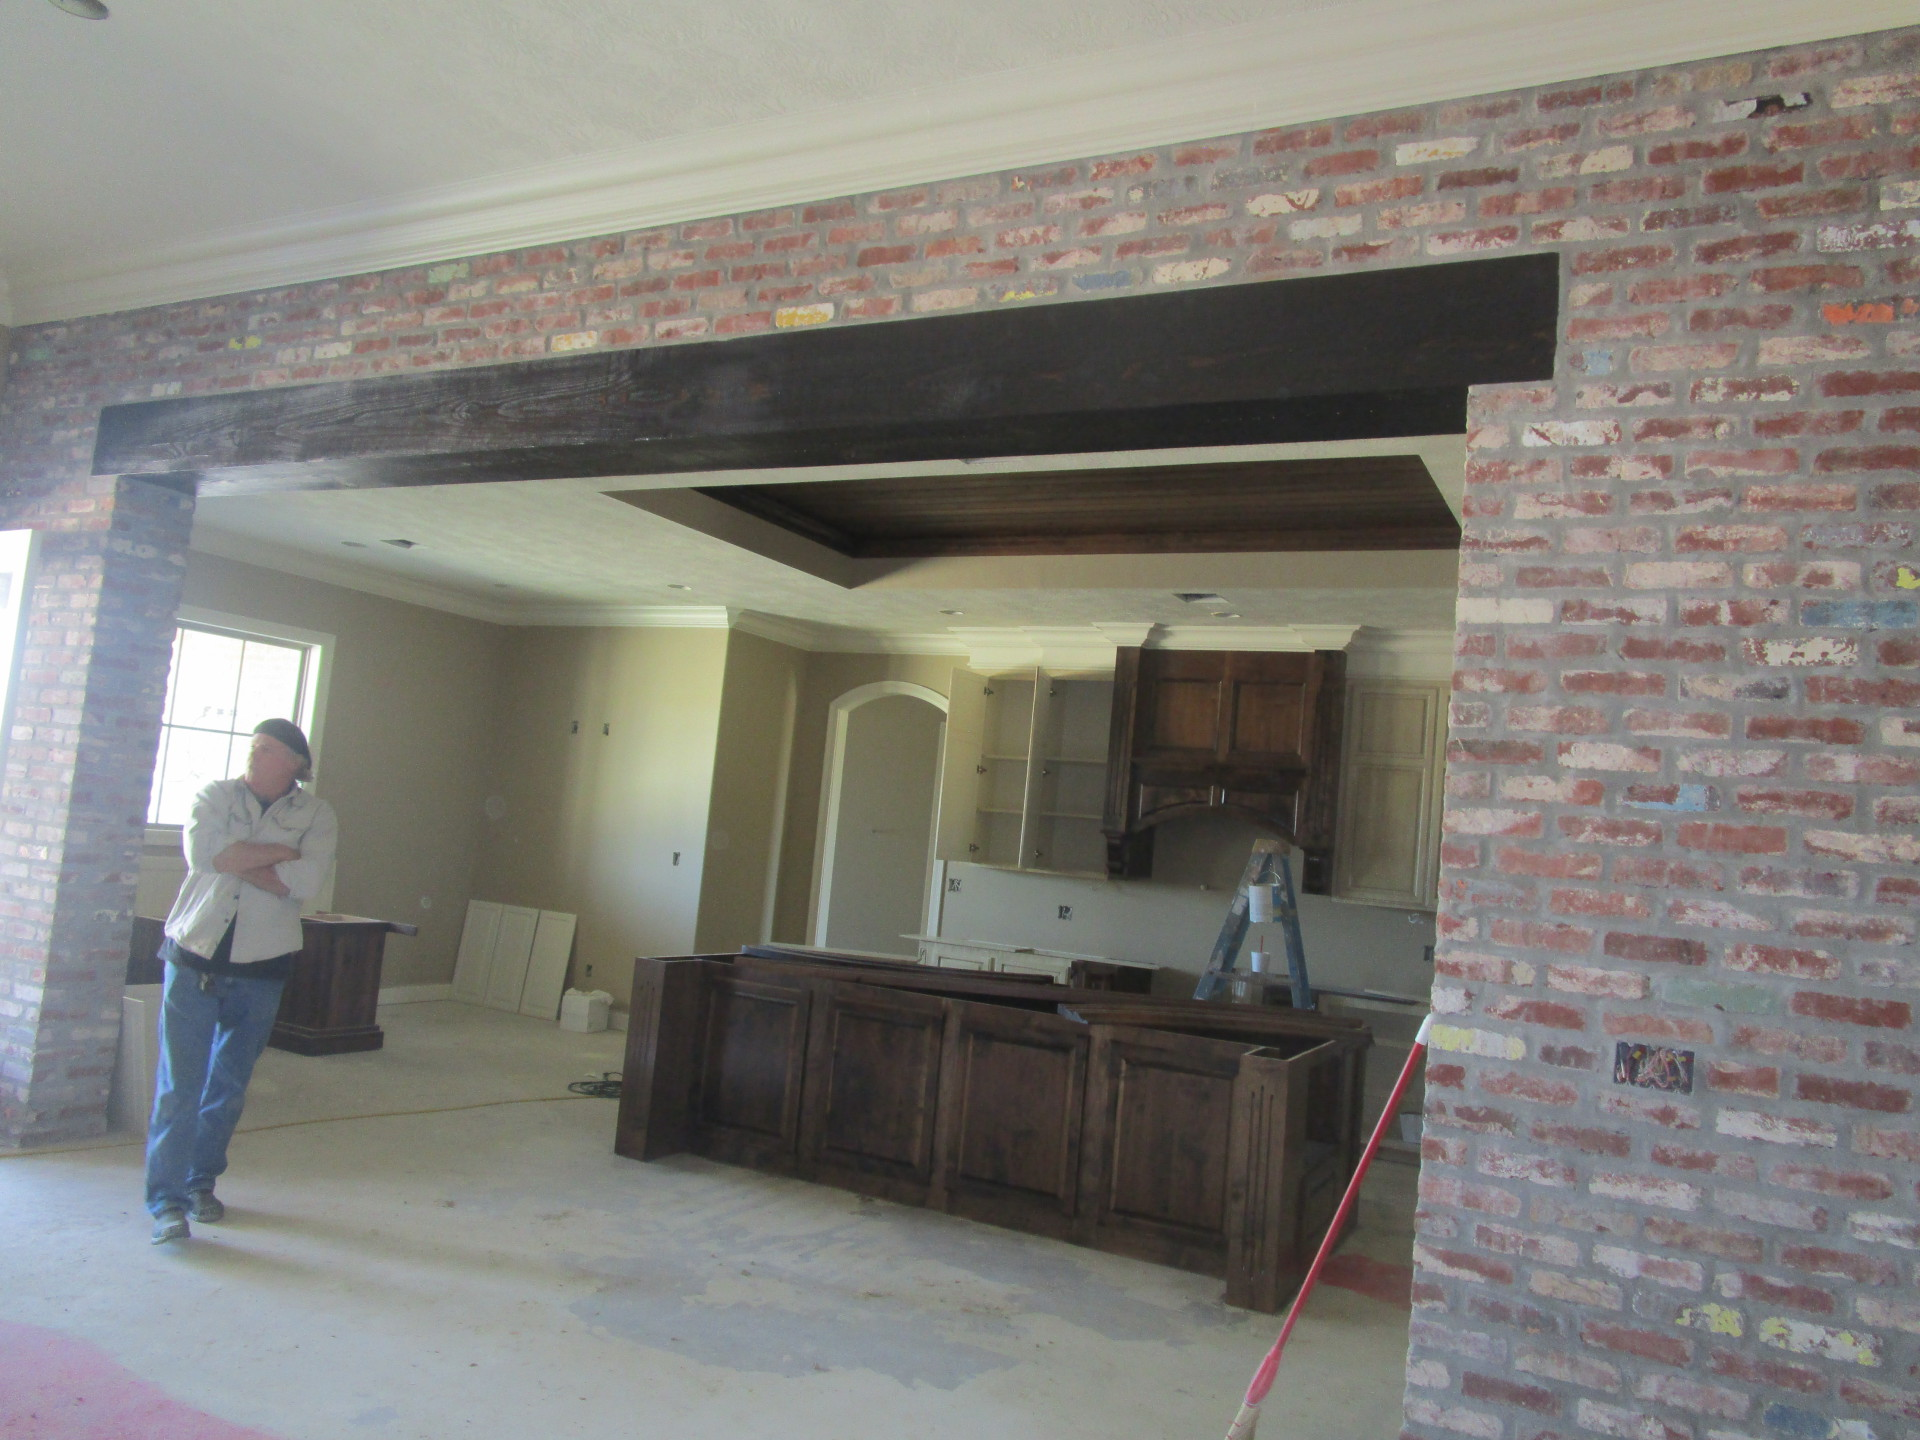 Interior Brickwork & Exposed Beam